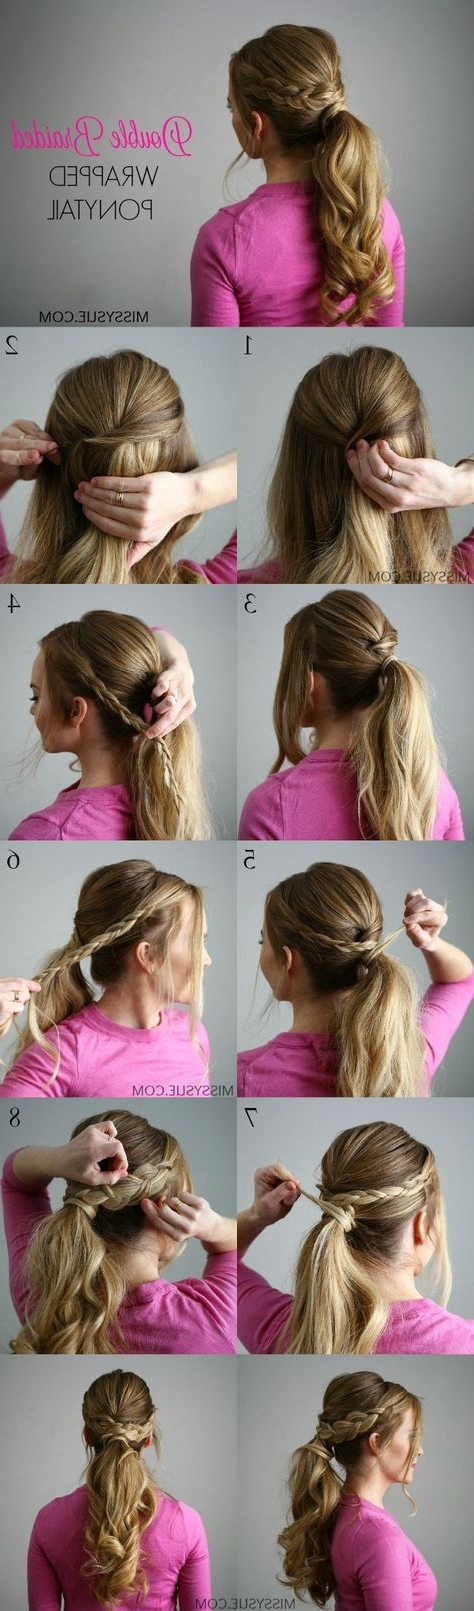 Double Braid Wrapped Ponytail | Hairstyle Ideas | Pinterest | Ponytail Within Double Braided Wrap Around Ponytail Hairstyles (Gallery 12 of 25)